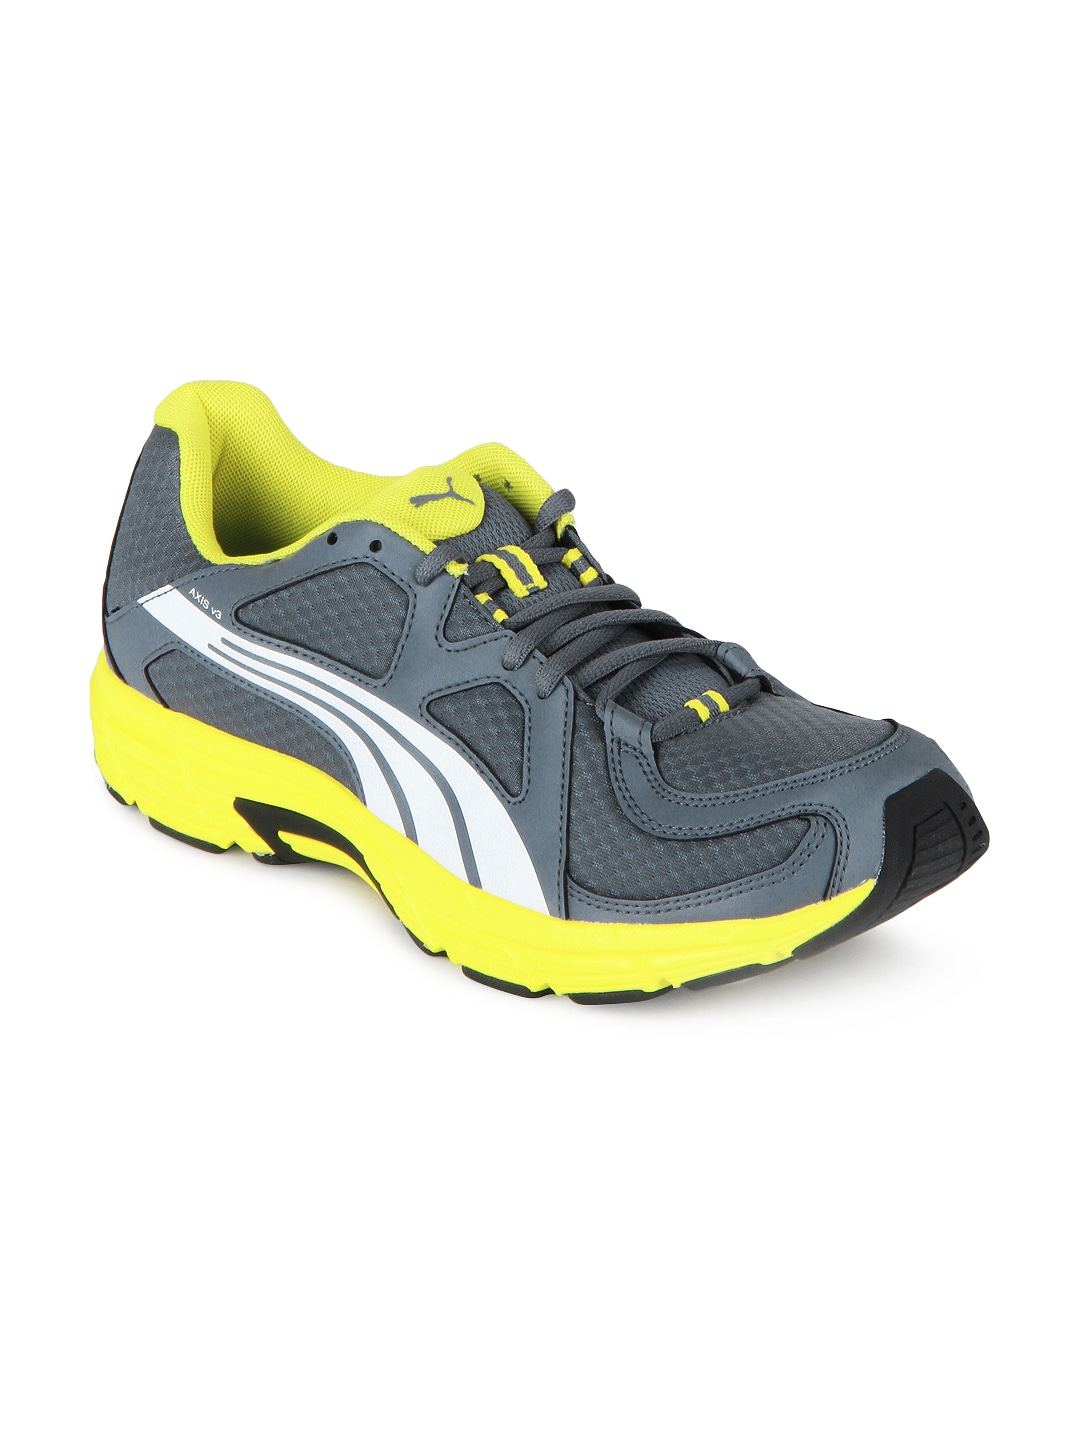 buy grey yellow axis v3 sports shoes 634